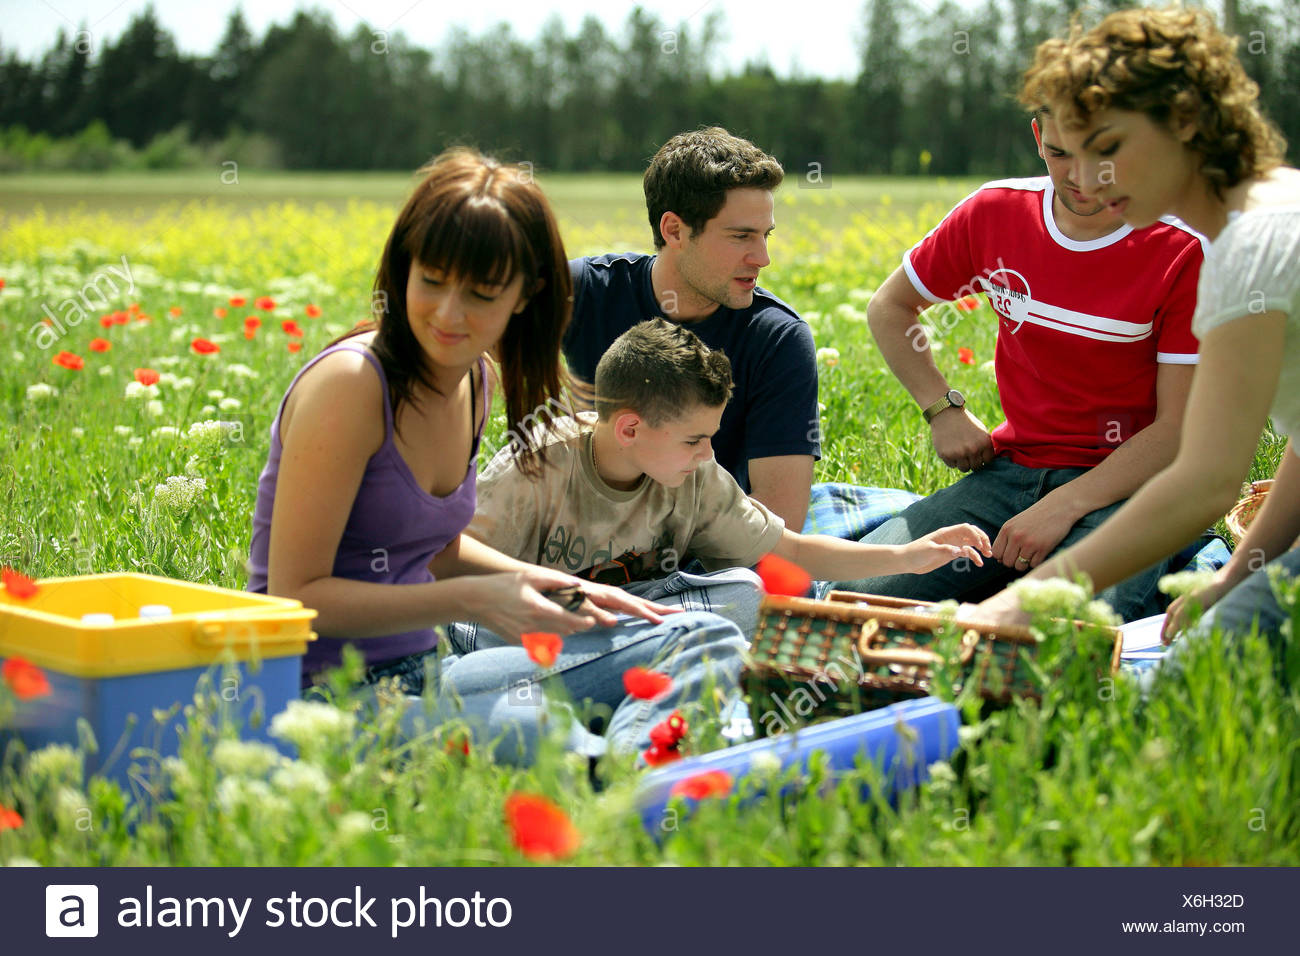 Group of friends having a picnic in a poppies yard - Stock Image